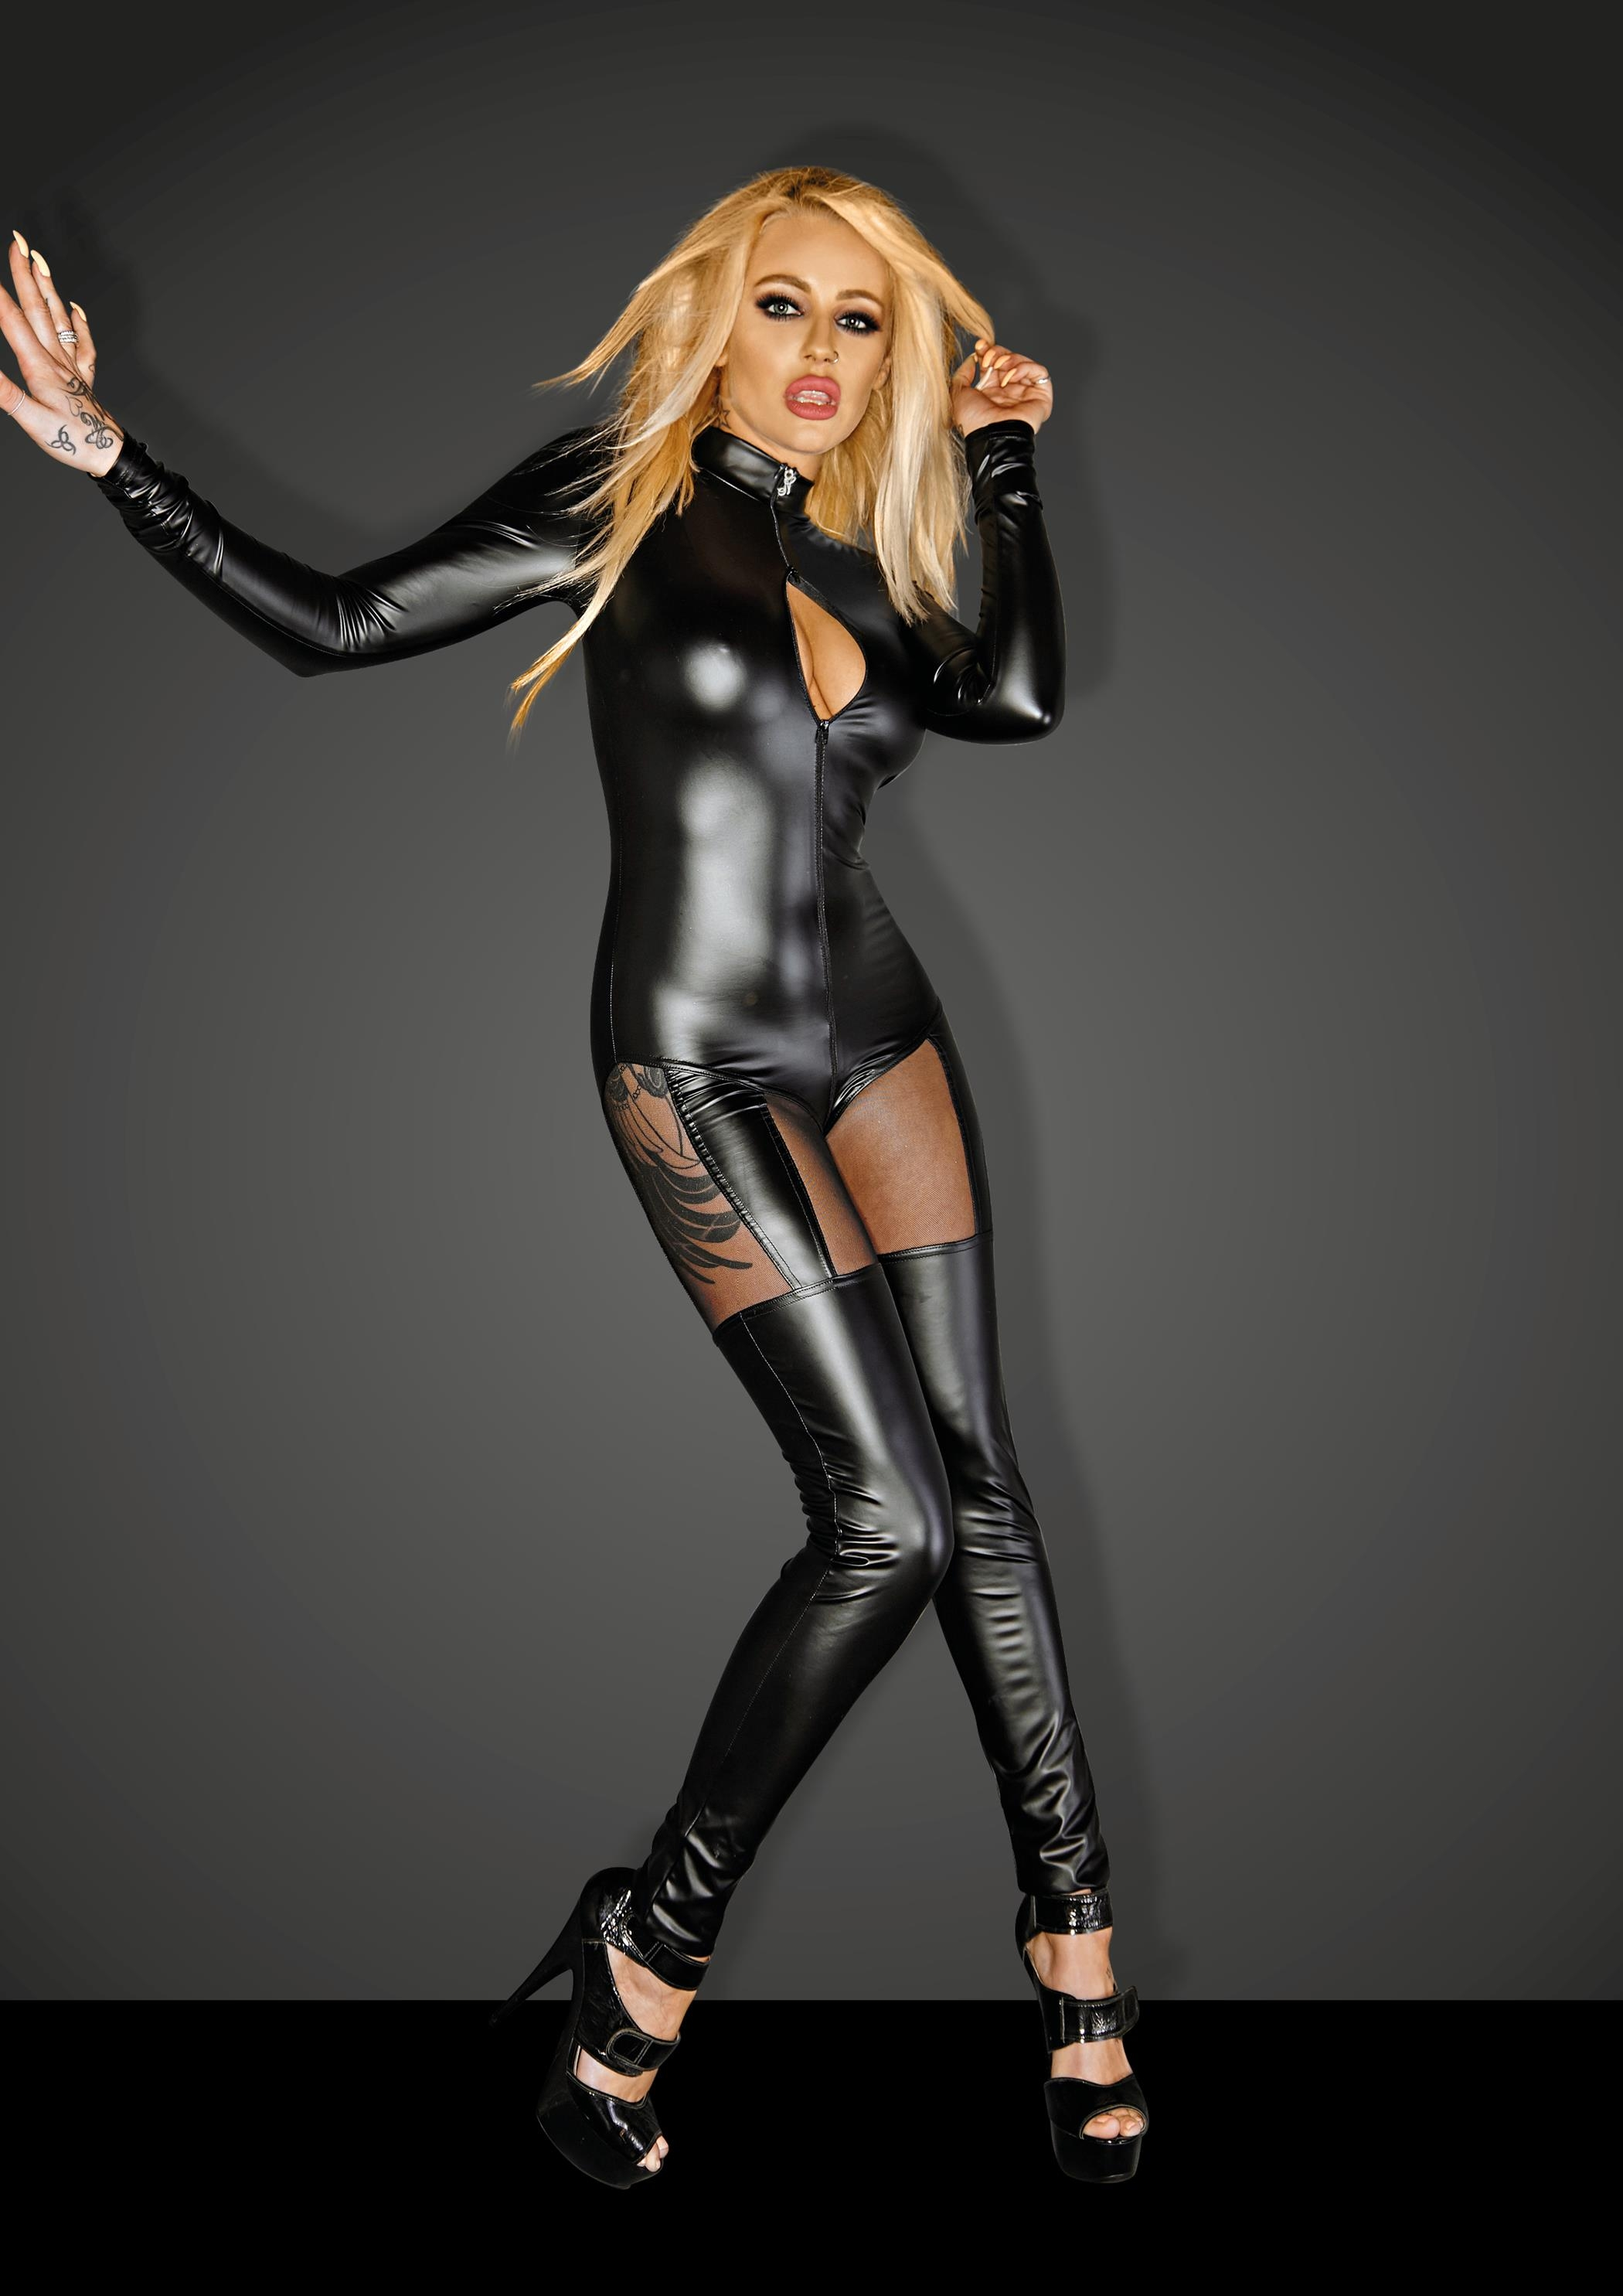 QUEEN Wetlook Catsuit | LINGERIE & KLÄDER, FETISHKLÄDER TJEJ, Fetish Body & Playsuits | Intimast.se - Sexleksaker